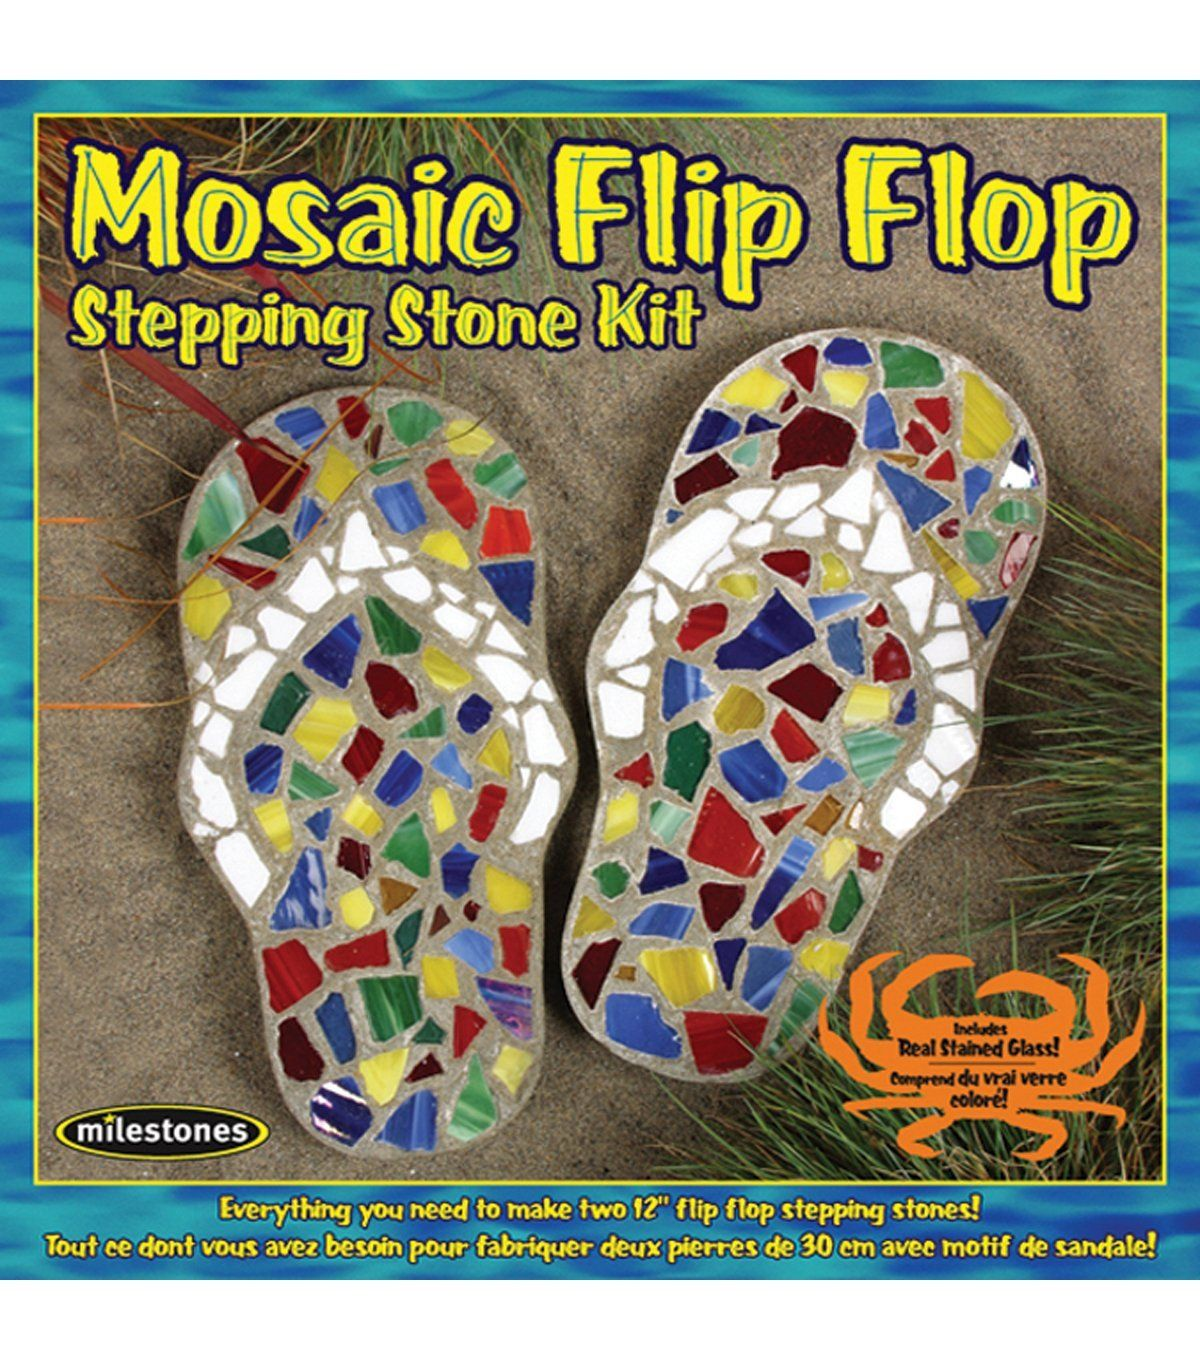 56d7e0ea04493 Midwest Products Mosaic Flip Flop Stepping Stone Kit